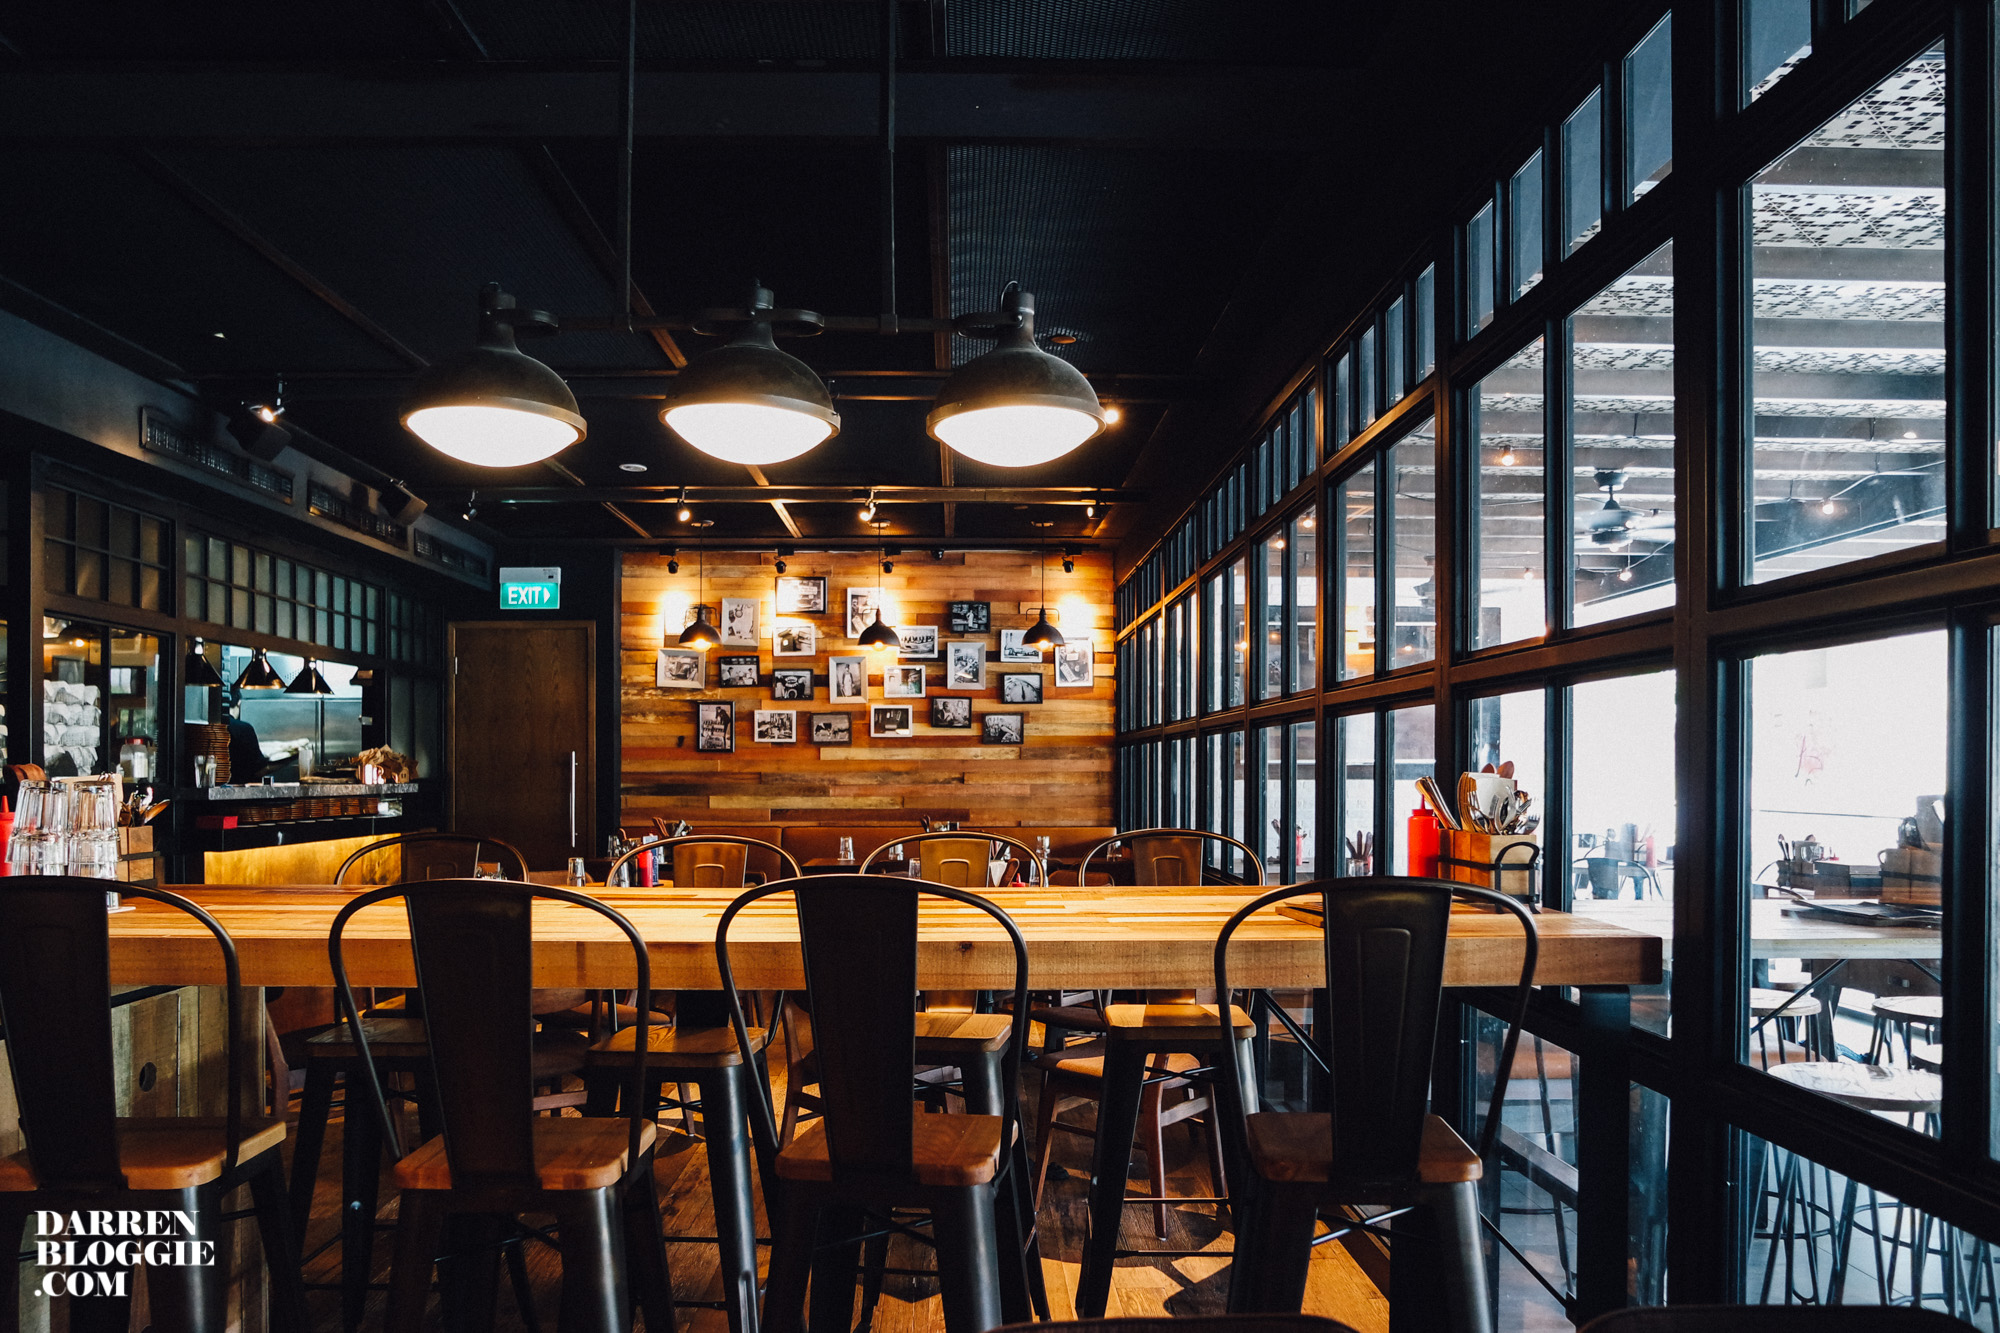 The Chop House Opens New Branch in Katong Darren Bloggie